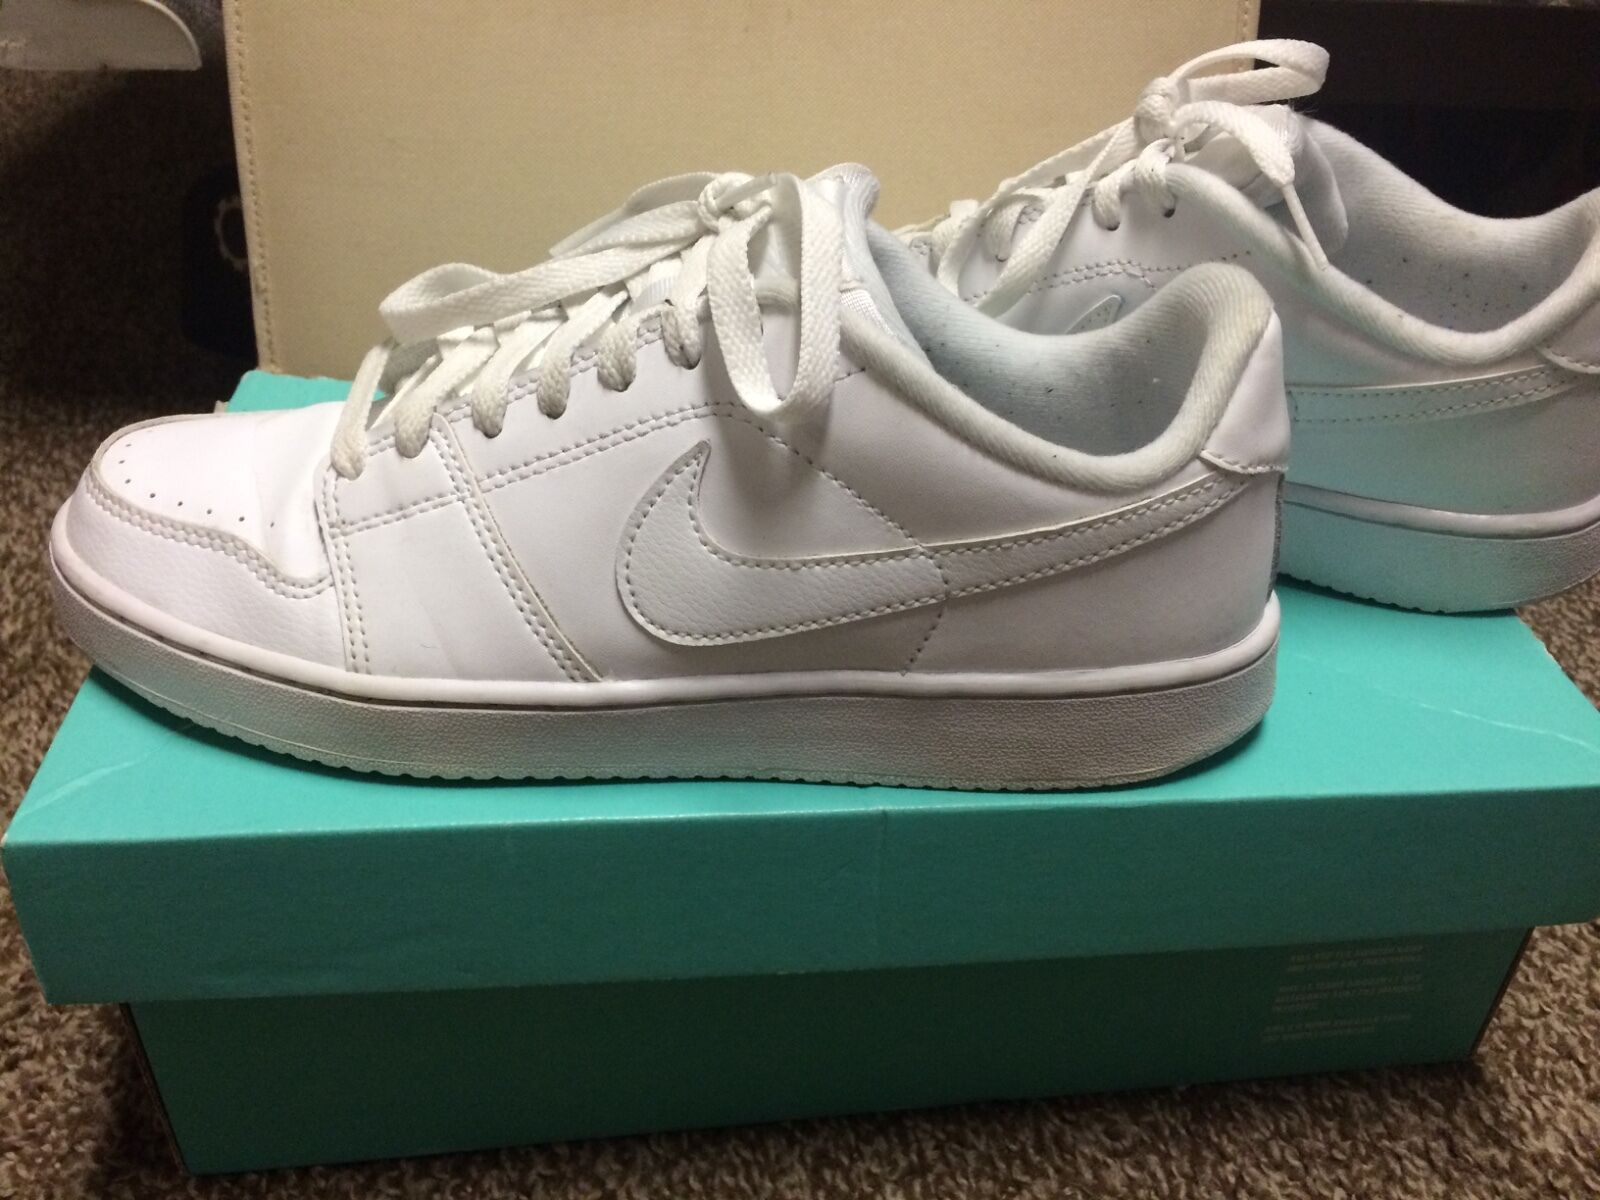 Mens or boys all white low top nike shoes size 7 slightly used worn once